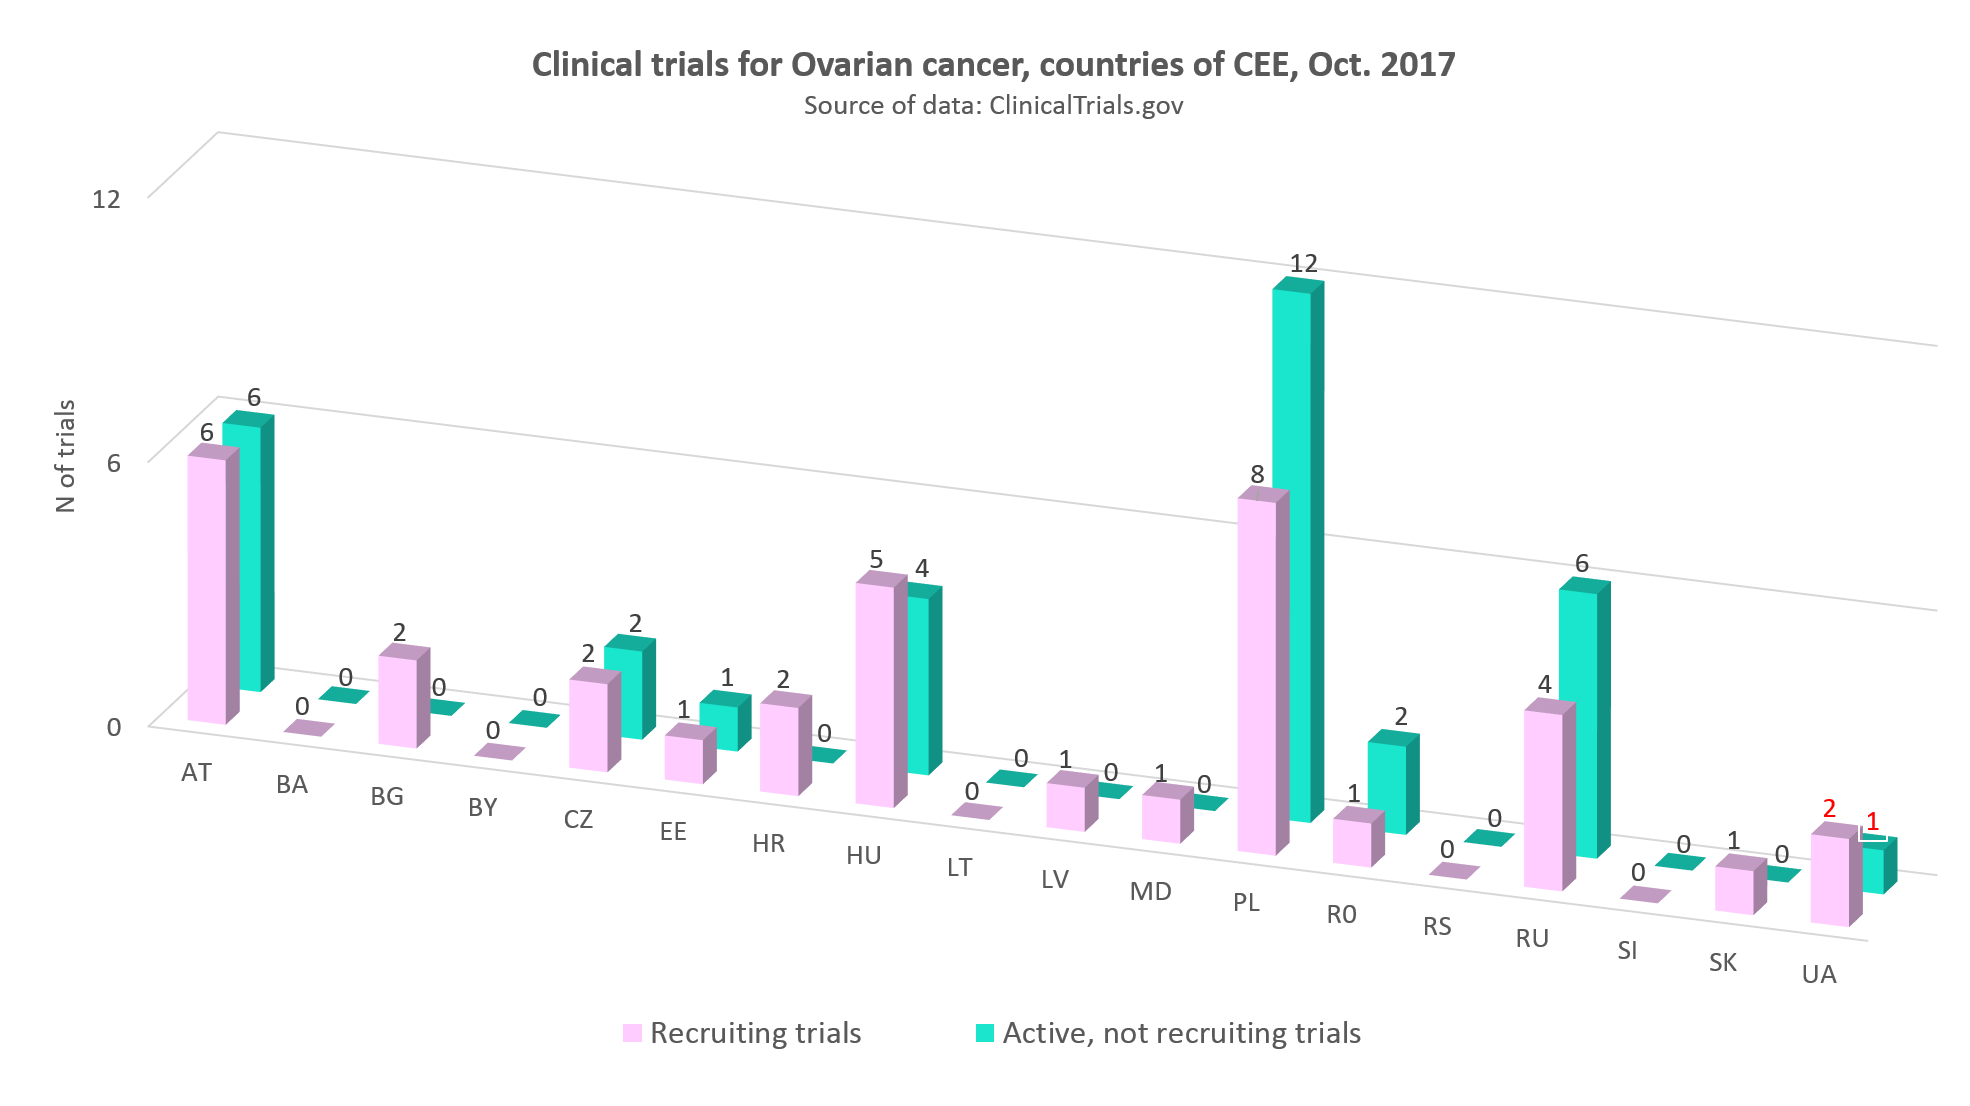 Clinical trials for ovarian cancer in the countries of CEE, Оctober 2017